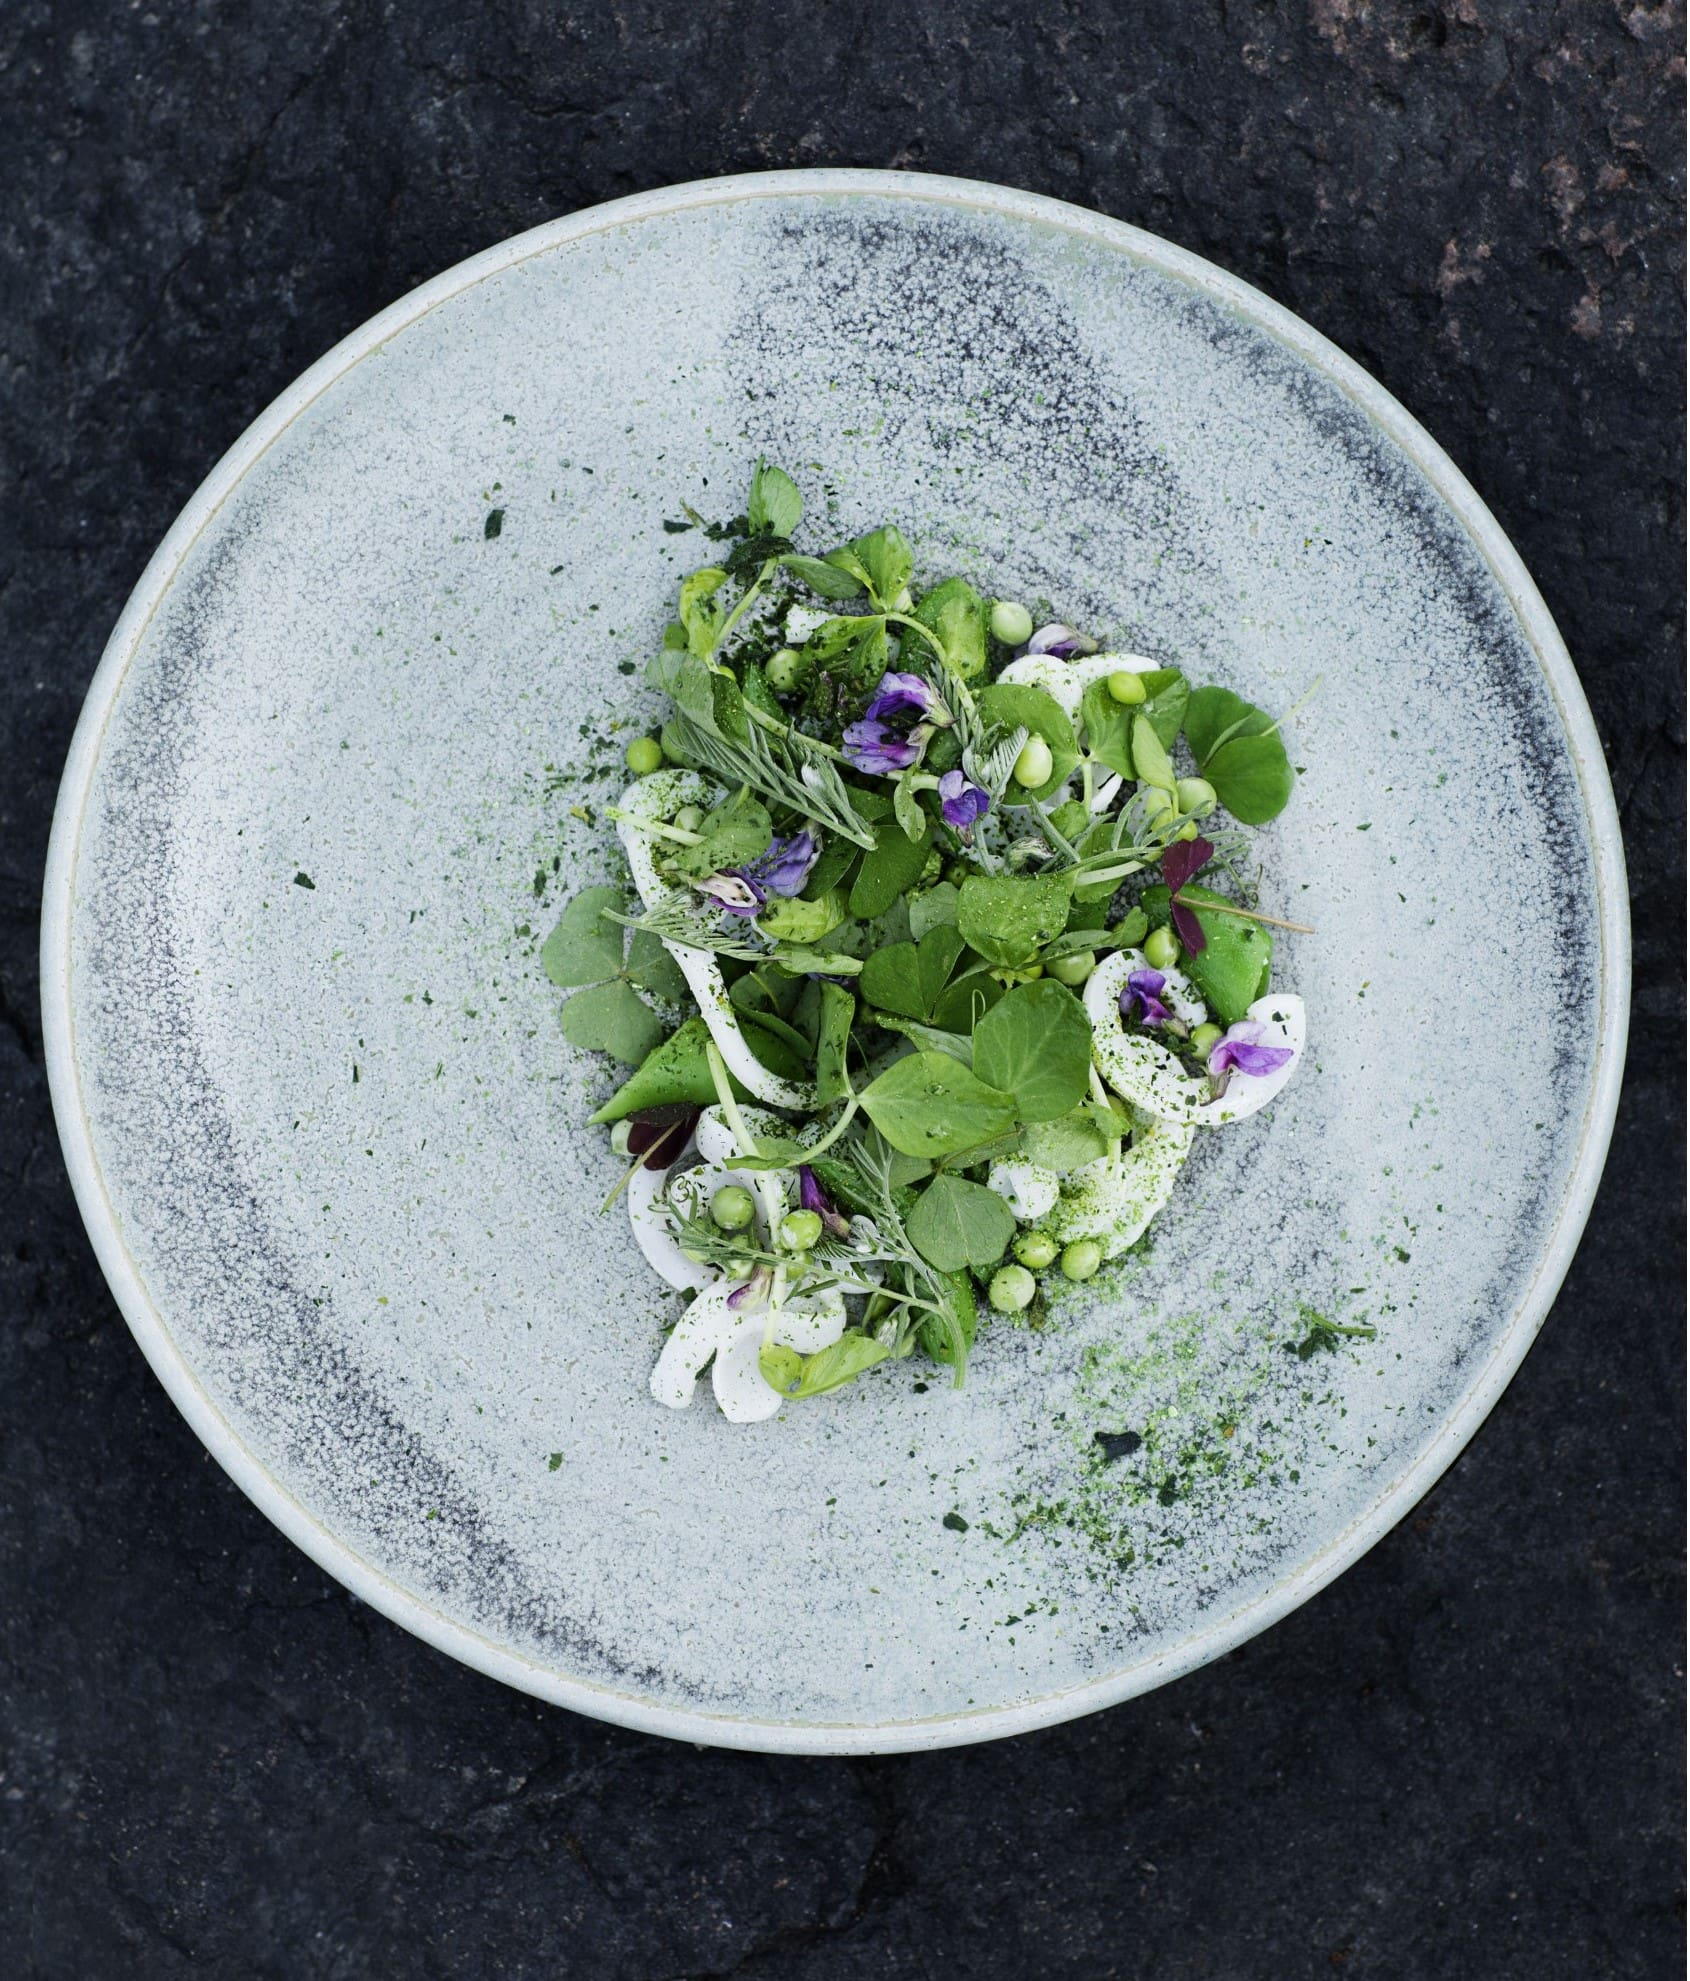 an overhead picture of a grey plate with a leafy vegetable salad dish upon it